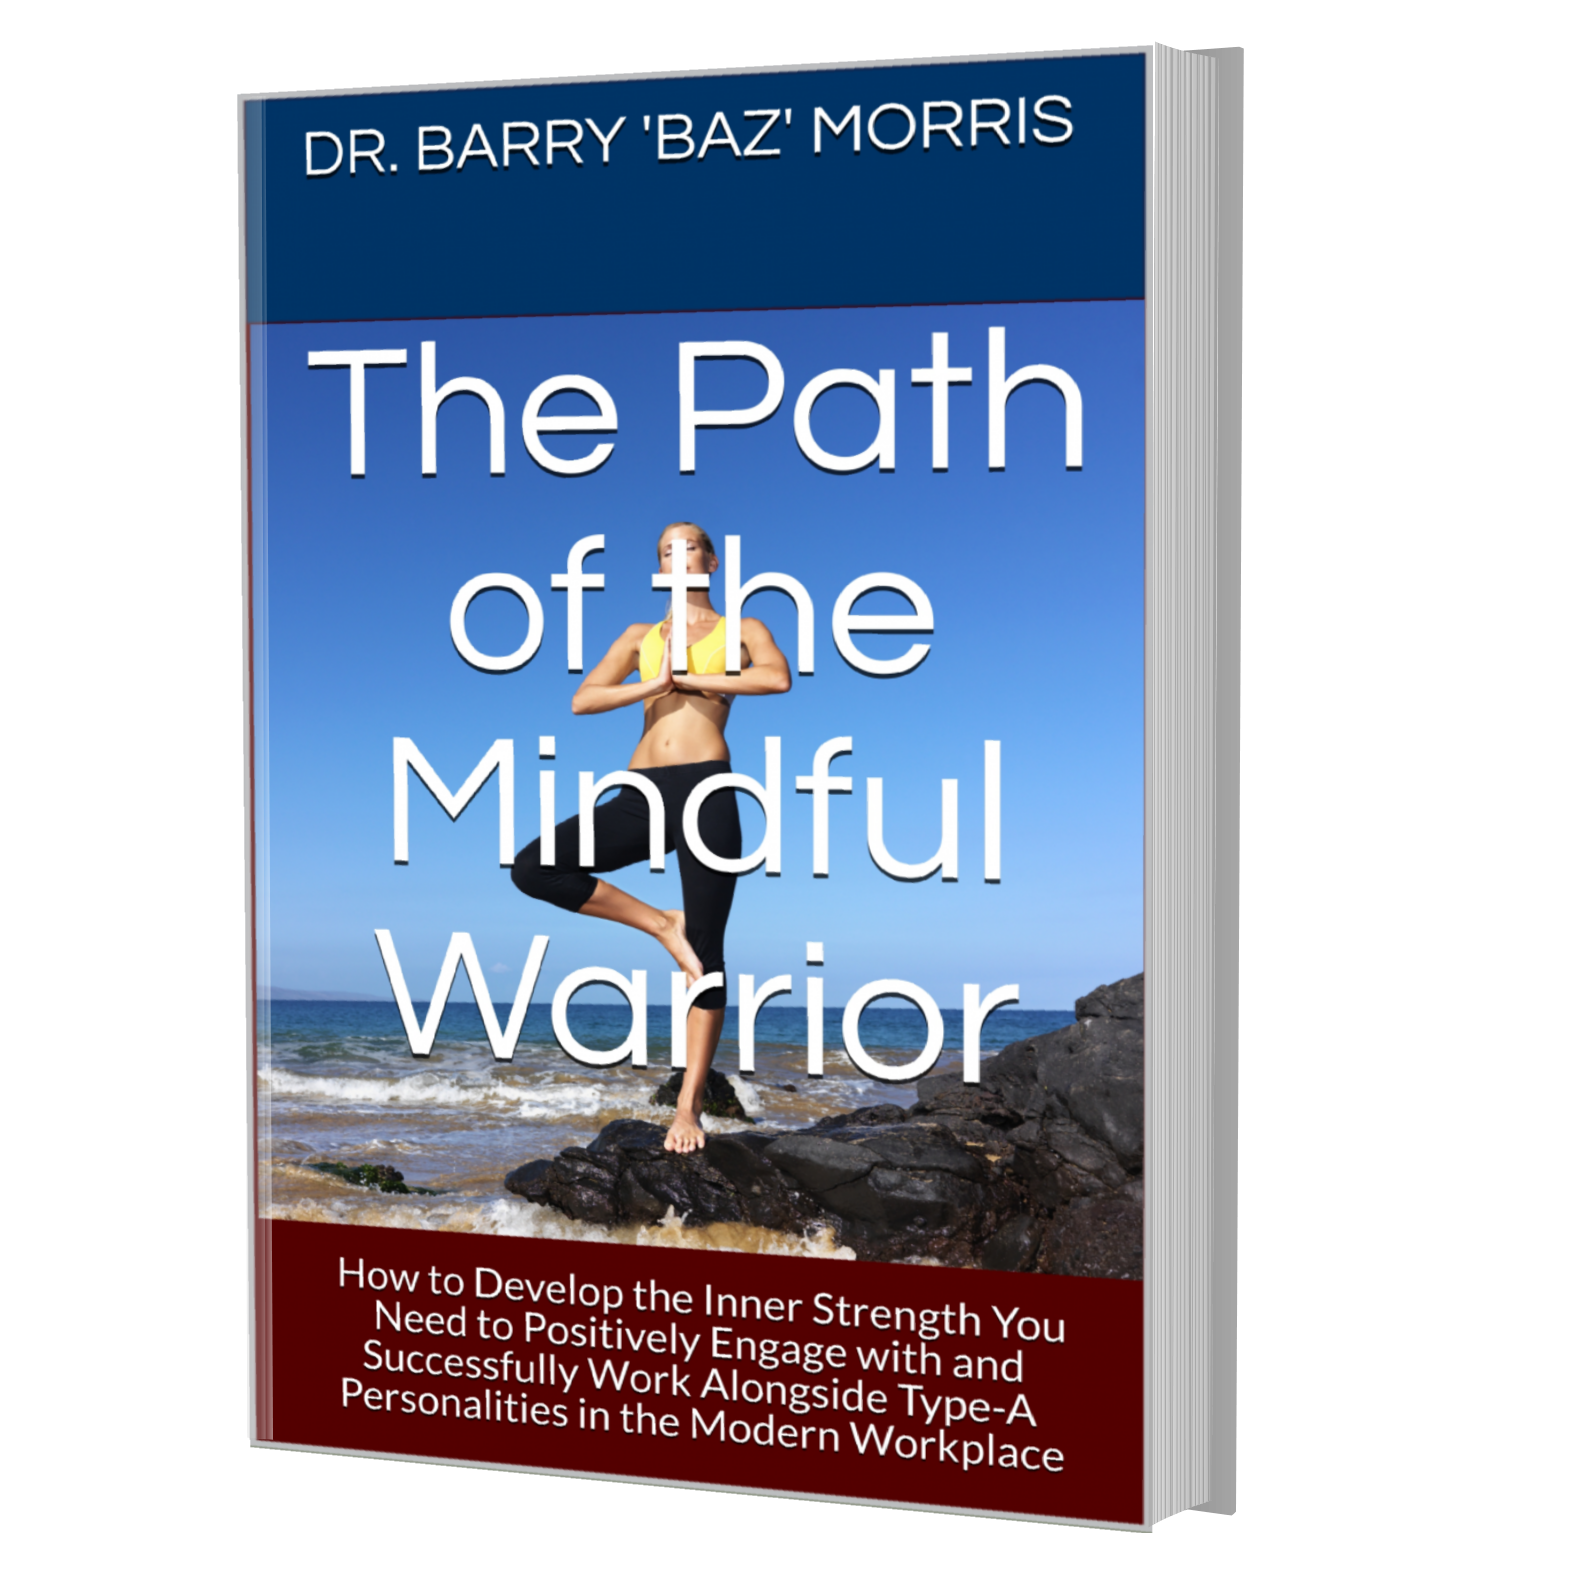 The Path of the Mindful Warrior - How to Develop the Inner Strength to Positively Engage with and Successfully Work Alongside Type-A Personalities in the Modern Workplace